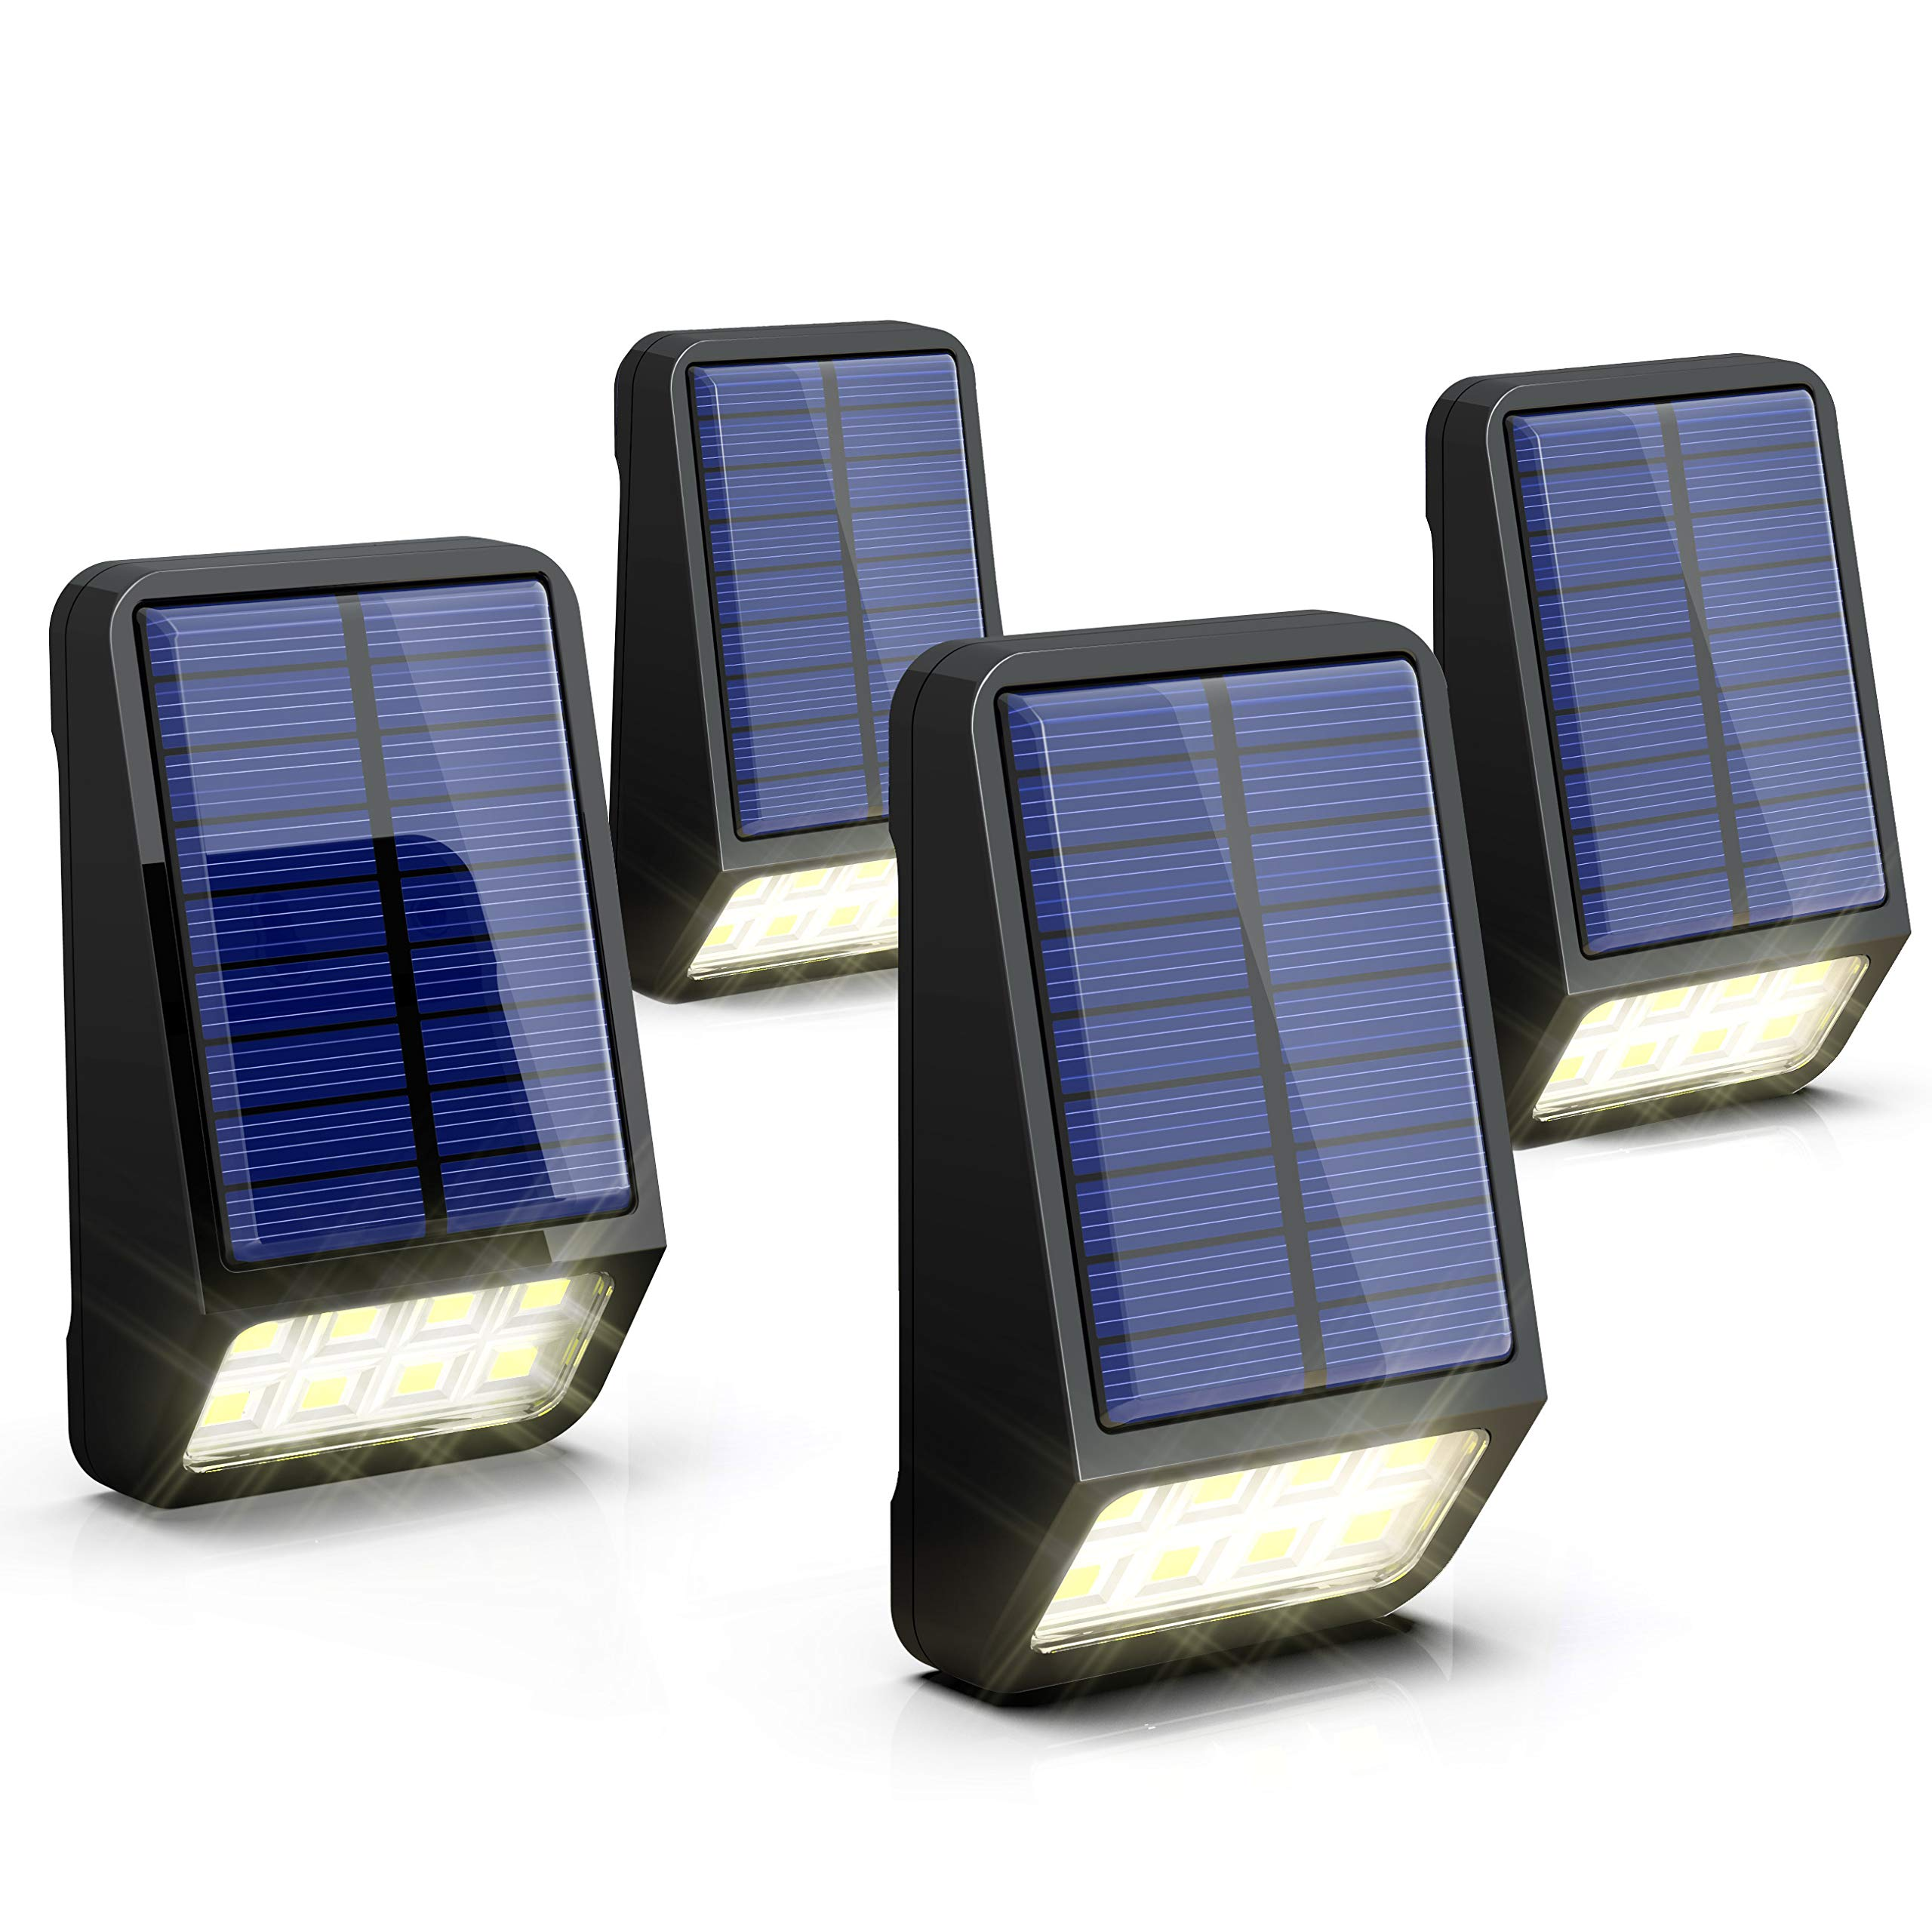 LOHAS Solar Fence Post Lights, IP65 Waterproof Mini Solar Lights Outdoor, 8 LEDs Deck Post Solar Light for Security, Outdoor Night Light Daylight 6000K, Auto on/Off Backyard Wall Mount Light, 4Pack by L LOHAS LED